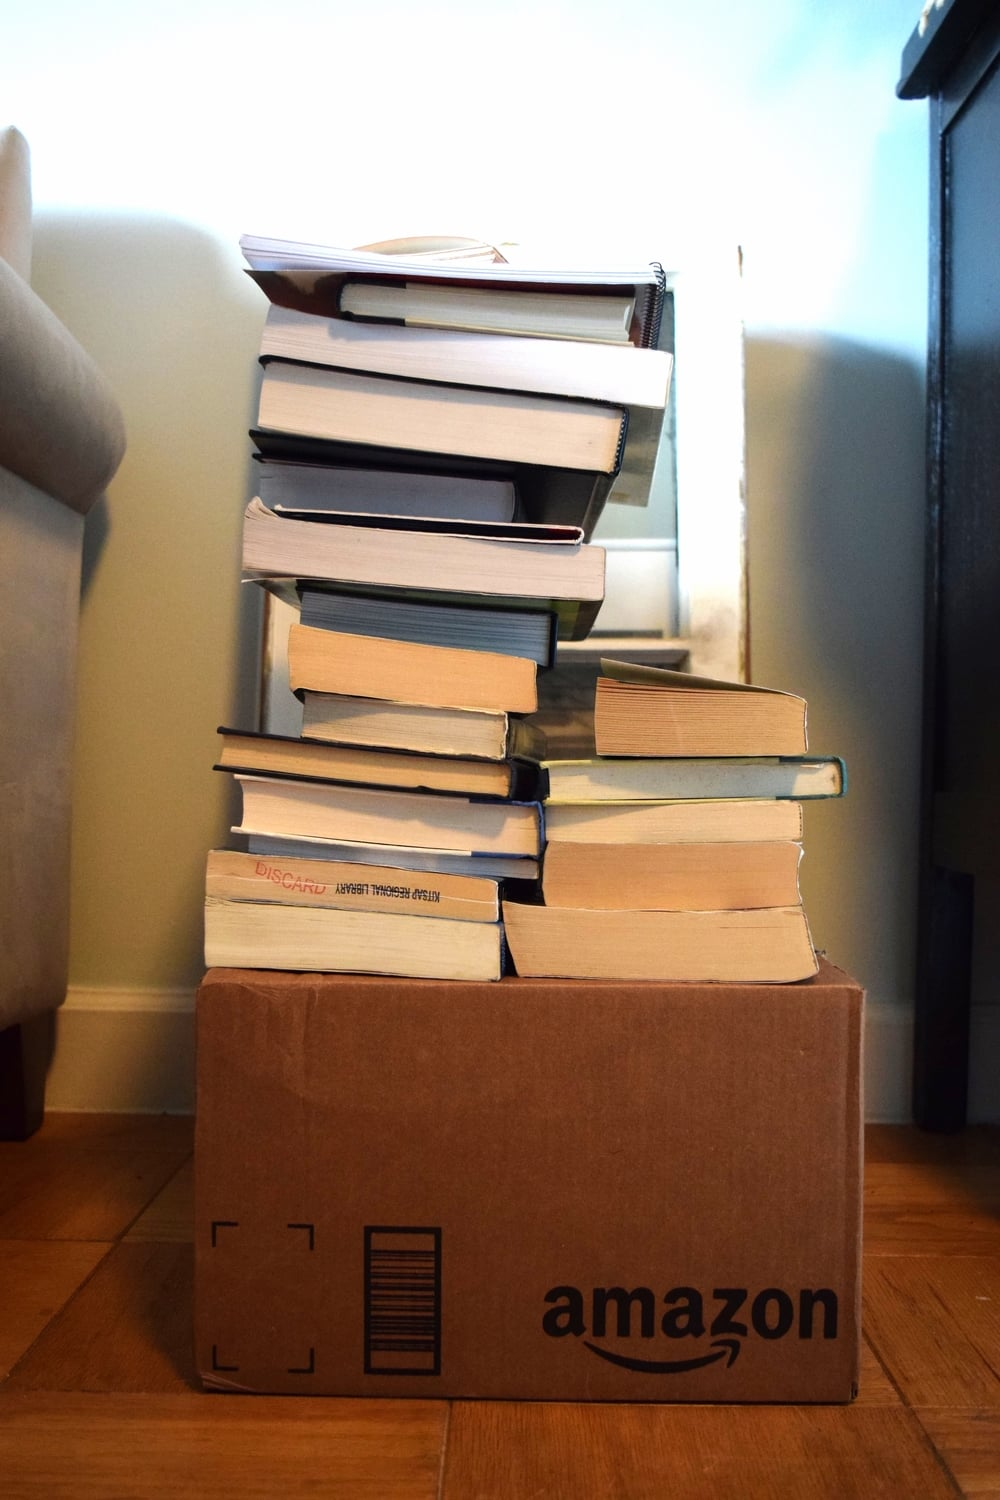 The box is full, too! P.S. The hubs taught me how to stack like that, without it falling over. Oh yes, it's still standing as I write this. He's got talent.